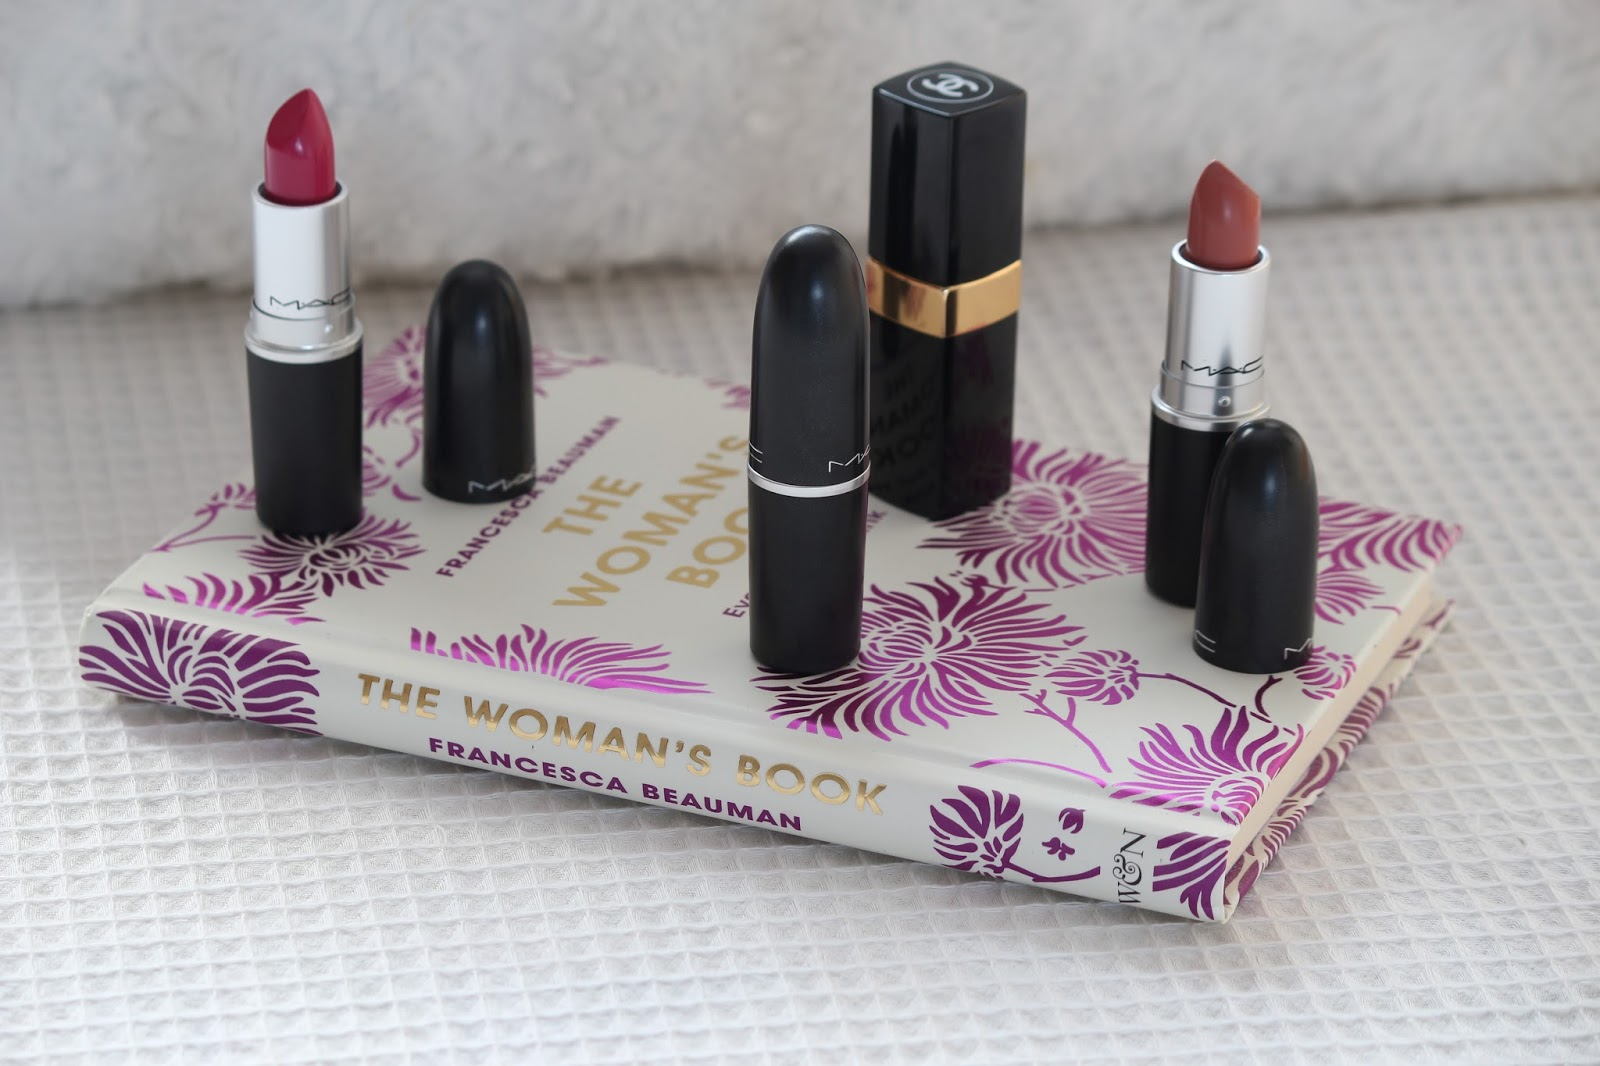 MAC Chanel Lipstick diva girl about town reviews velvet teddy